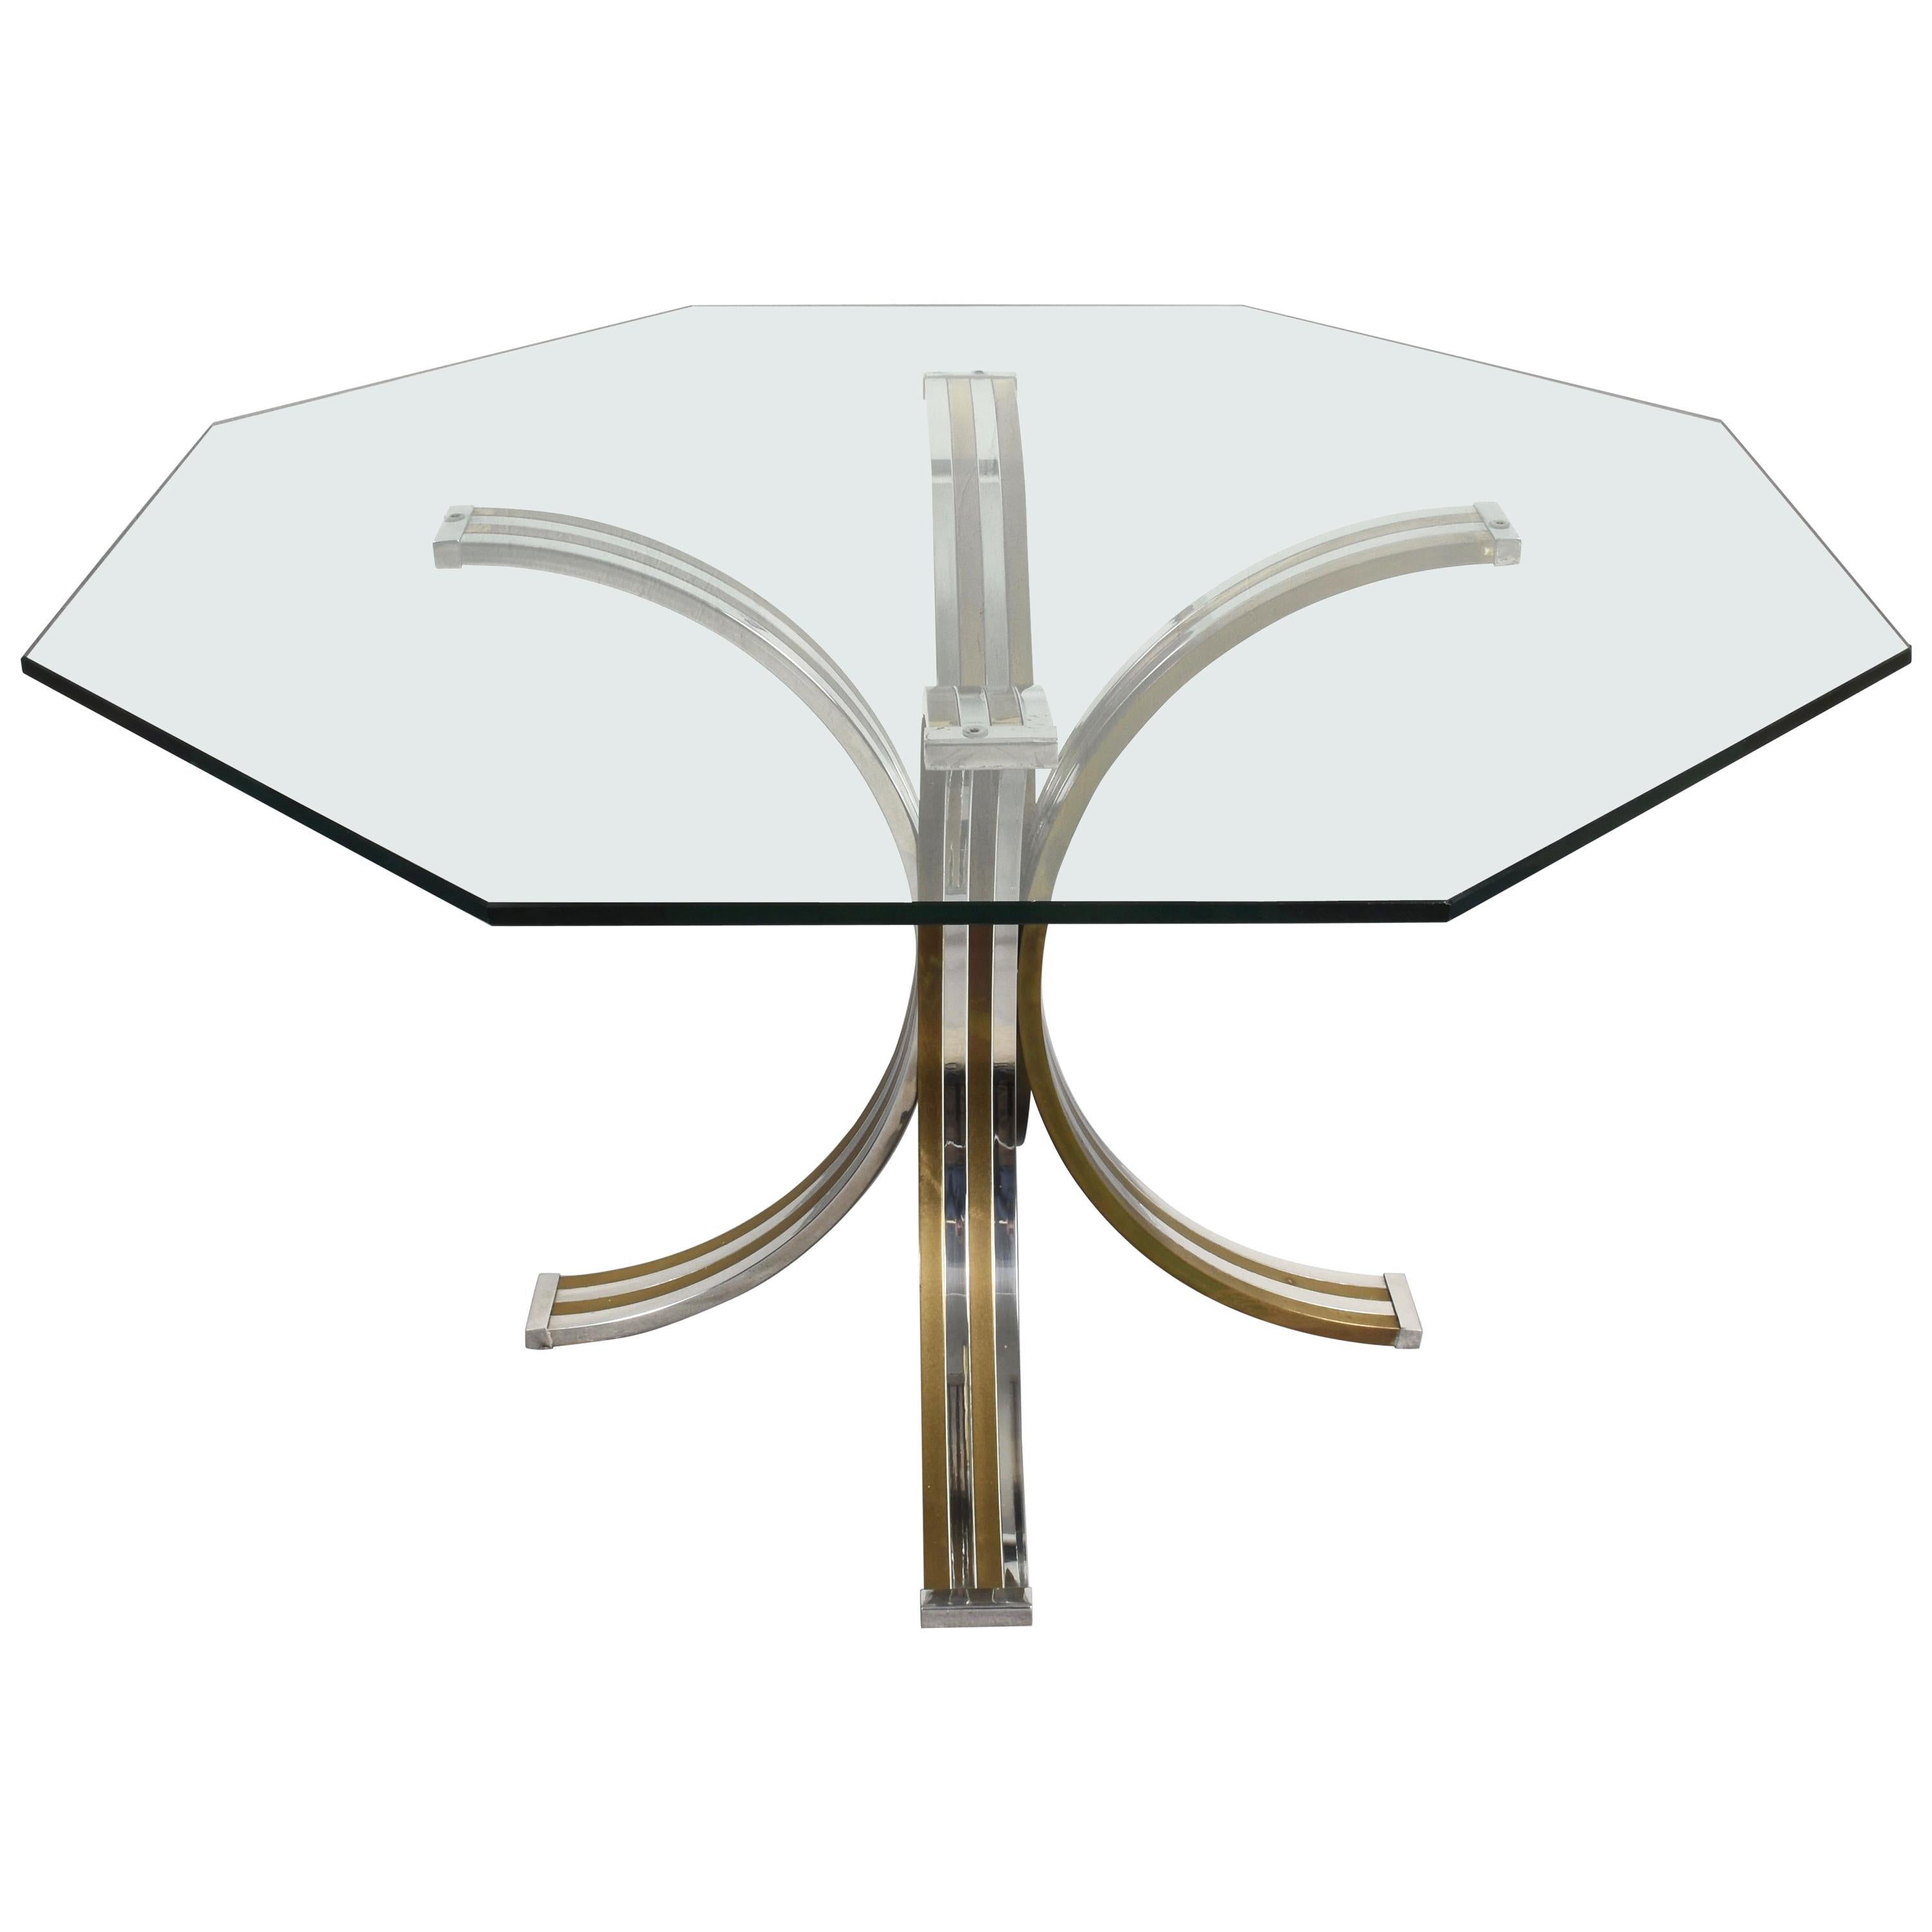 Brass and Chrome Octagonal Glass Italian Dining Table after Romeo Rega, 1970s